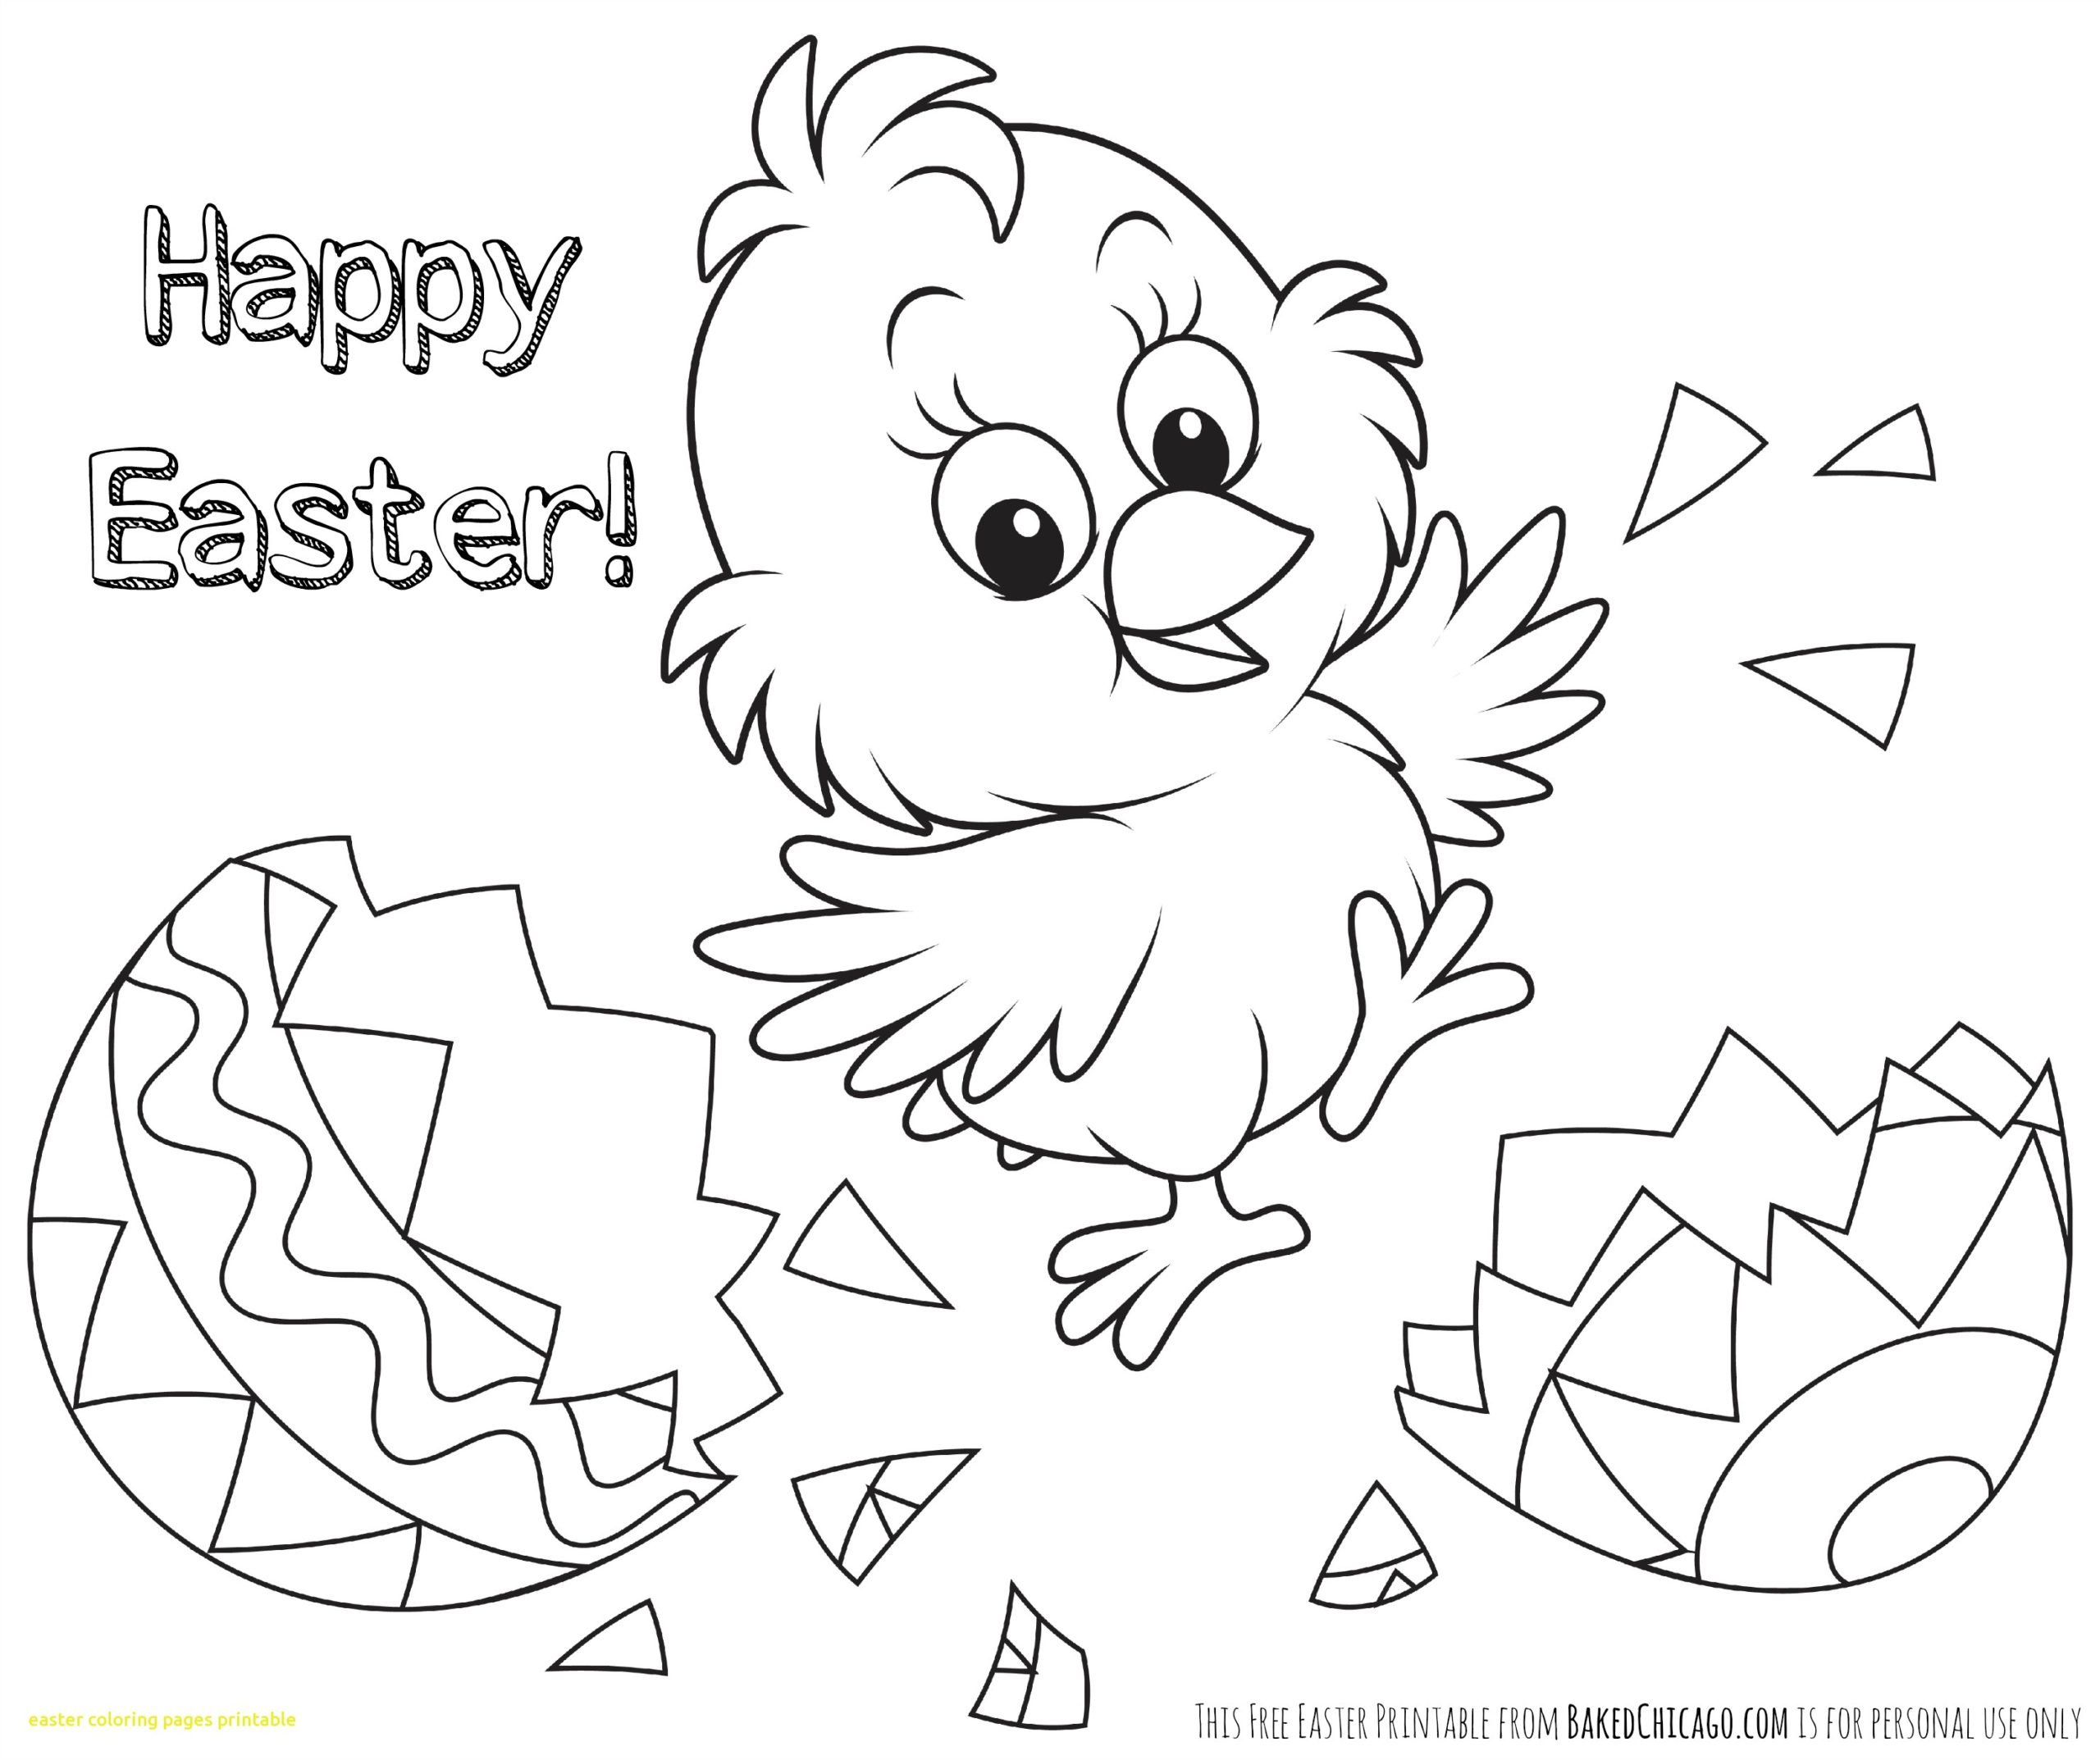 top-brilliant-easter-coloring-pages-for-preschoolers-disneyable-princess-kids-freeables-vintage